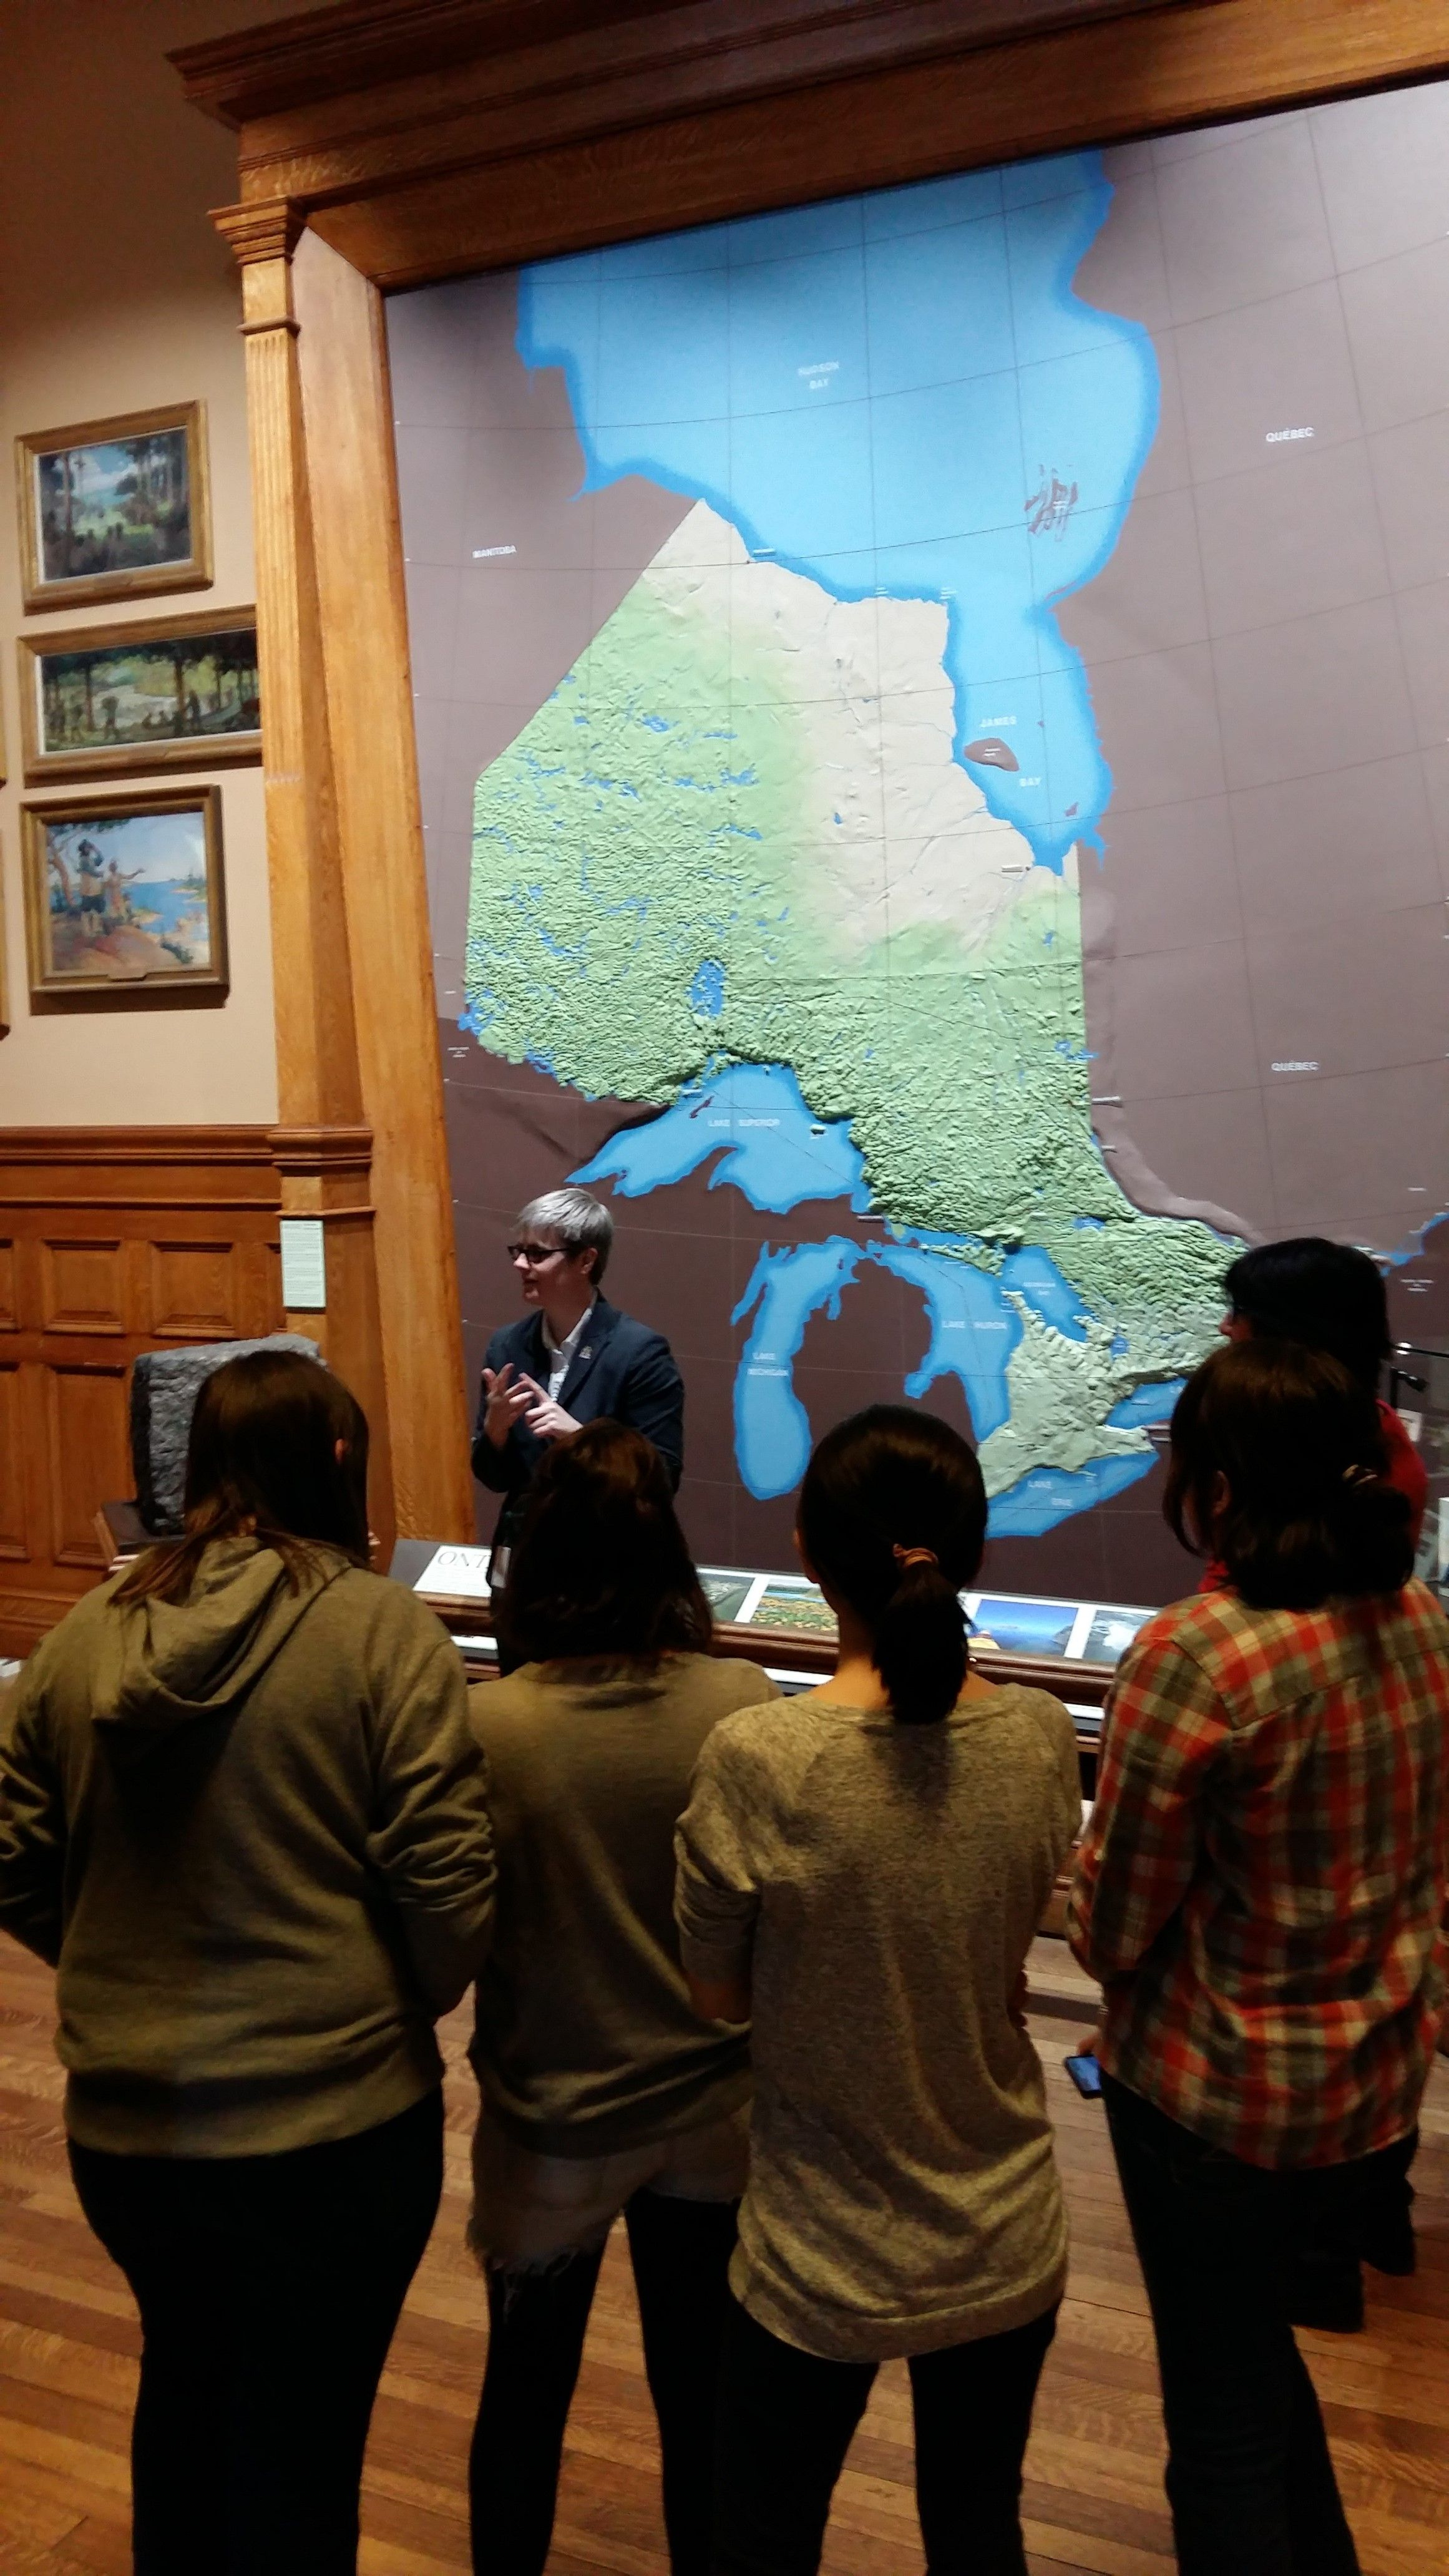 Start of talk about Province of Ontario more info at www